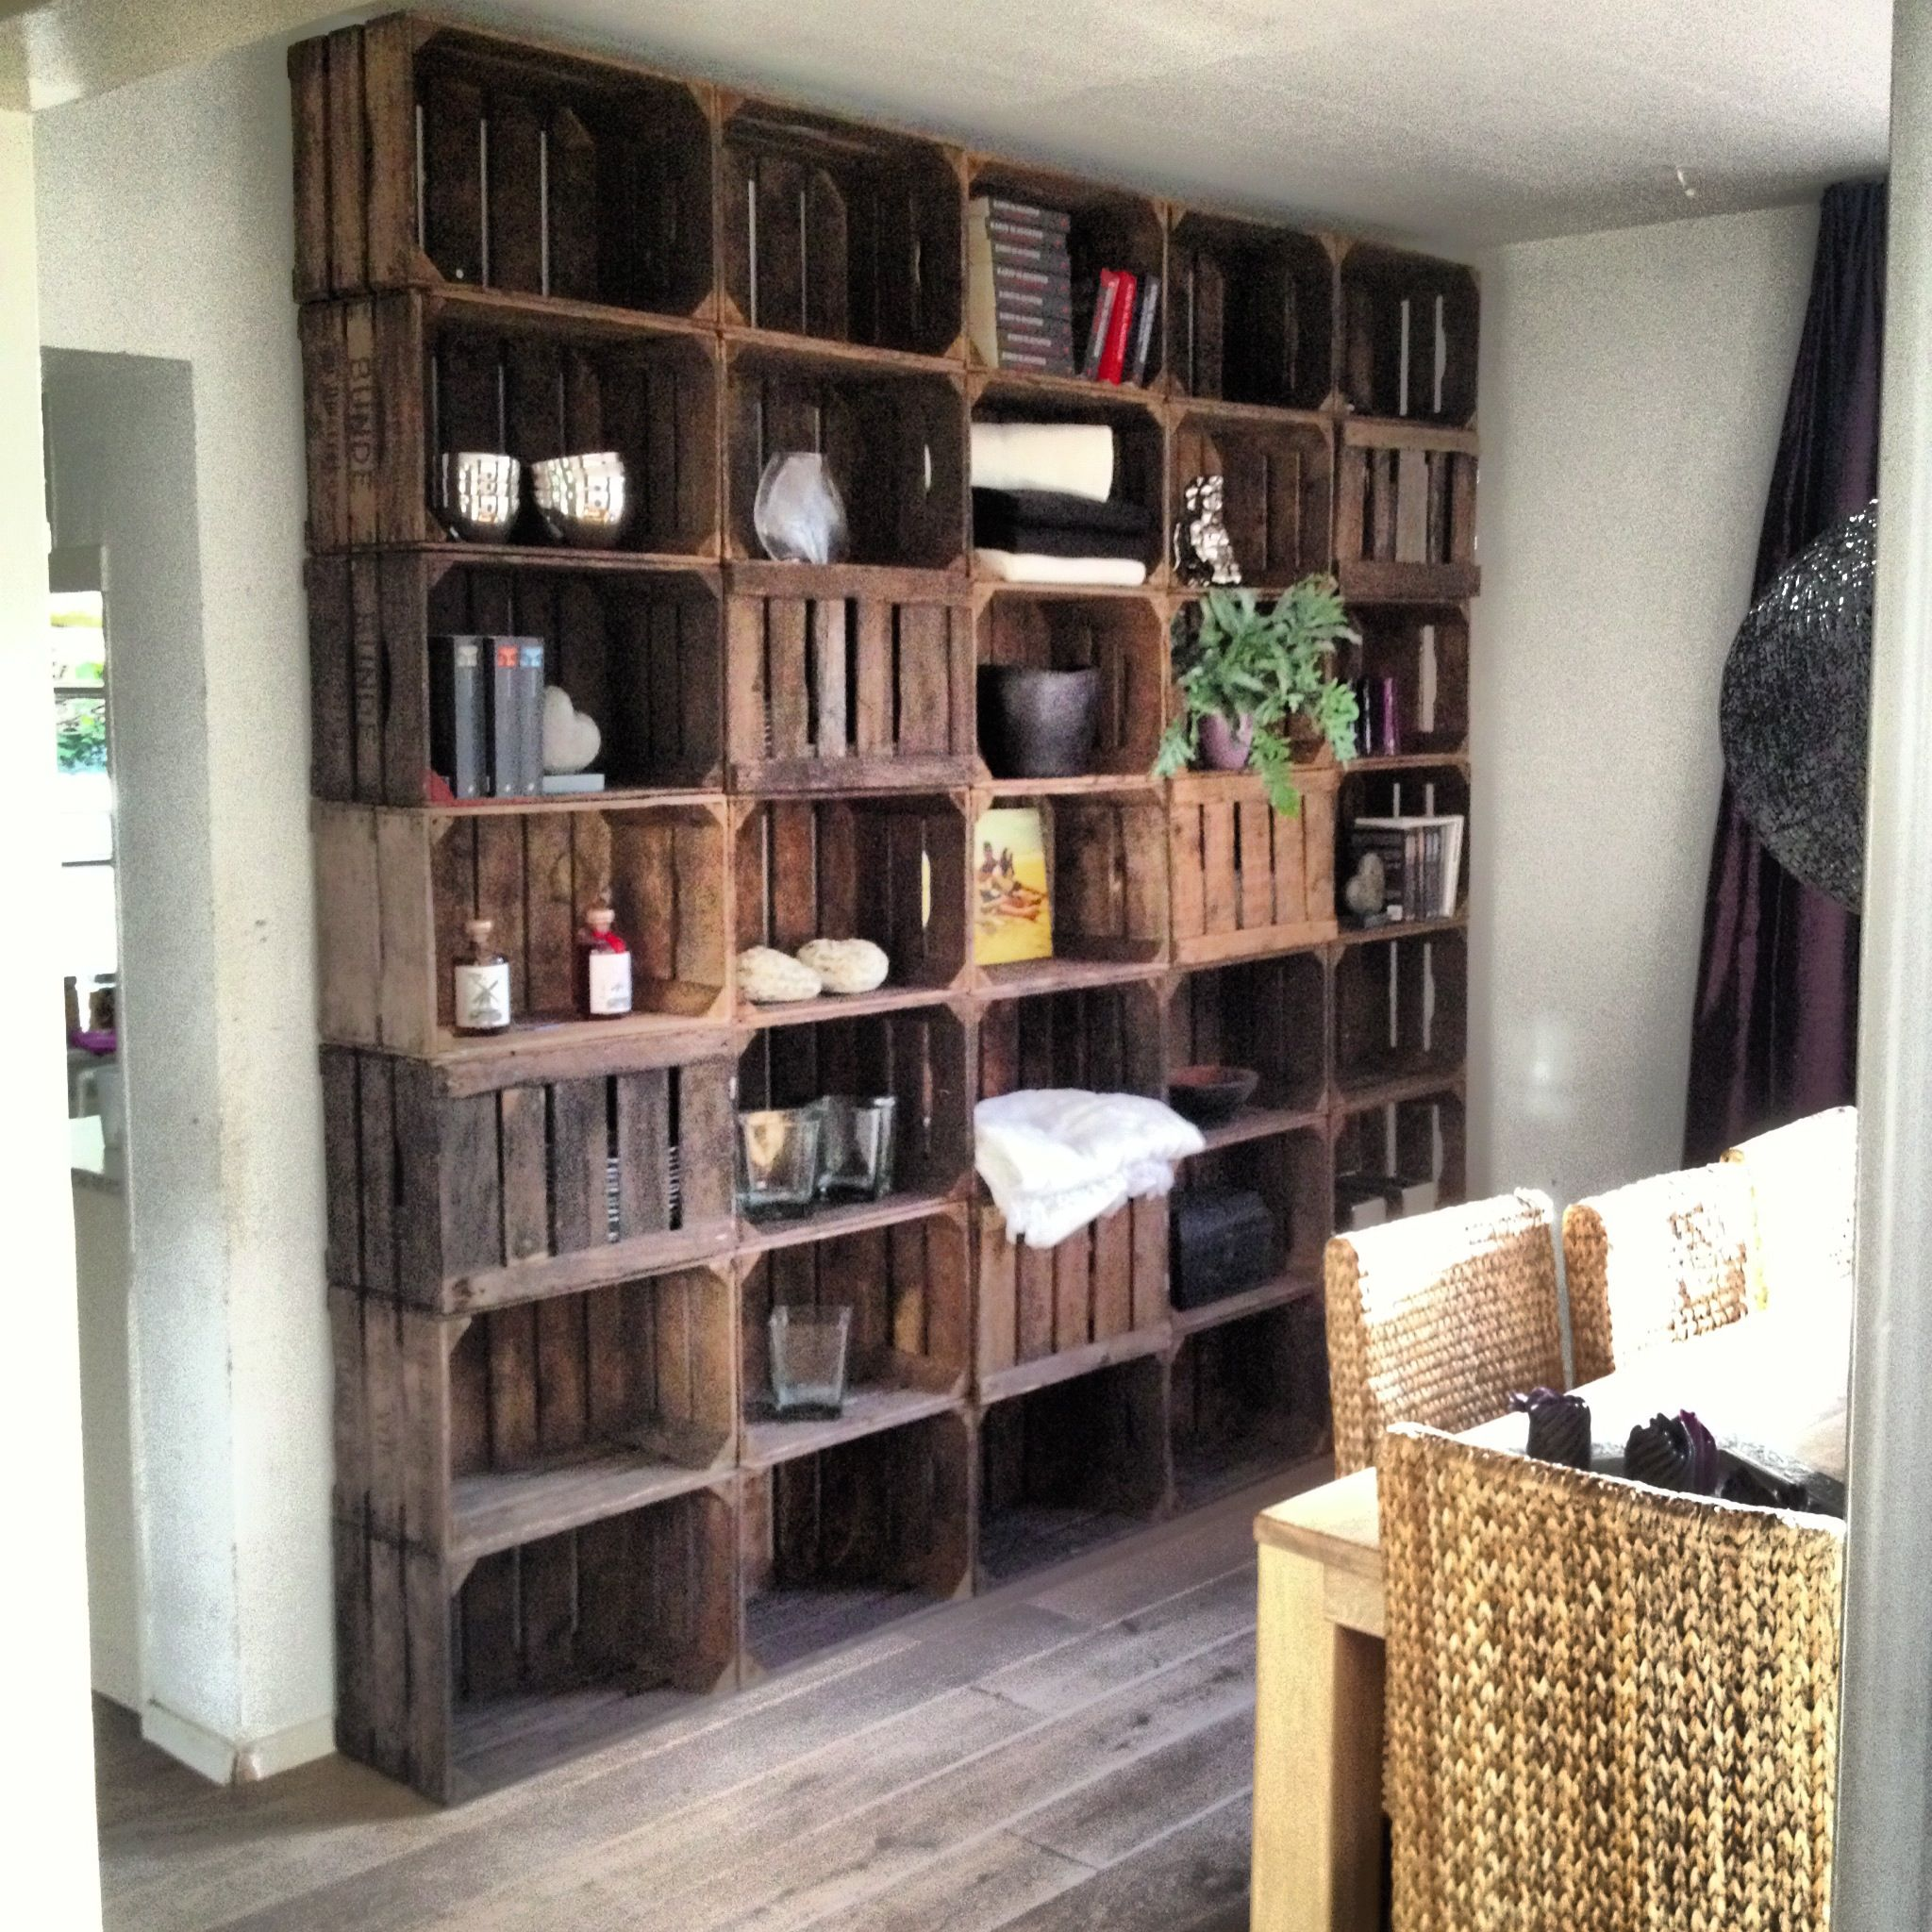 Wooden Crate Storage  Love The Floor To Ceiling Storage, Would Be Great For